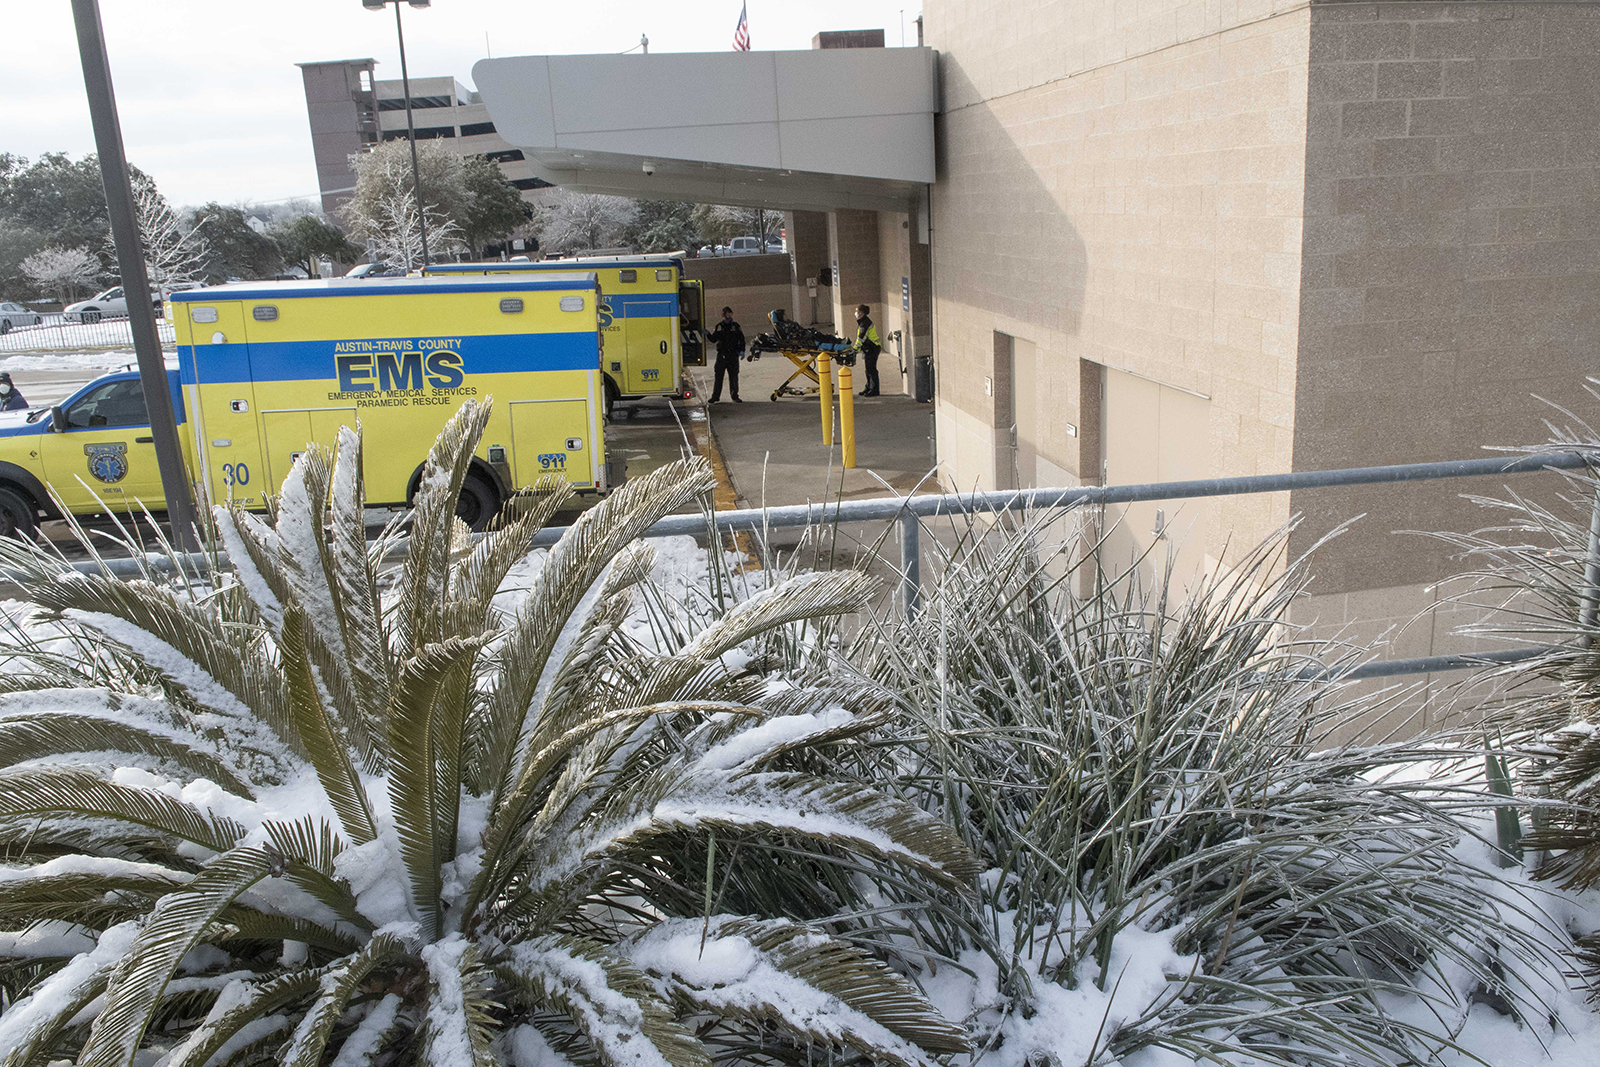 Emergency Medical Services workers load ambulances at Saint David's Medical Center in south Austin, Texas, after the hospital suffered water problems along with large swaths of the Austin metro area on February 18.